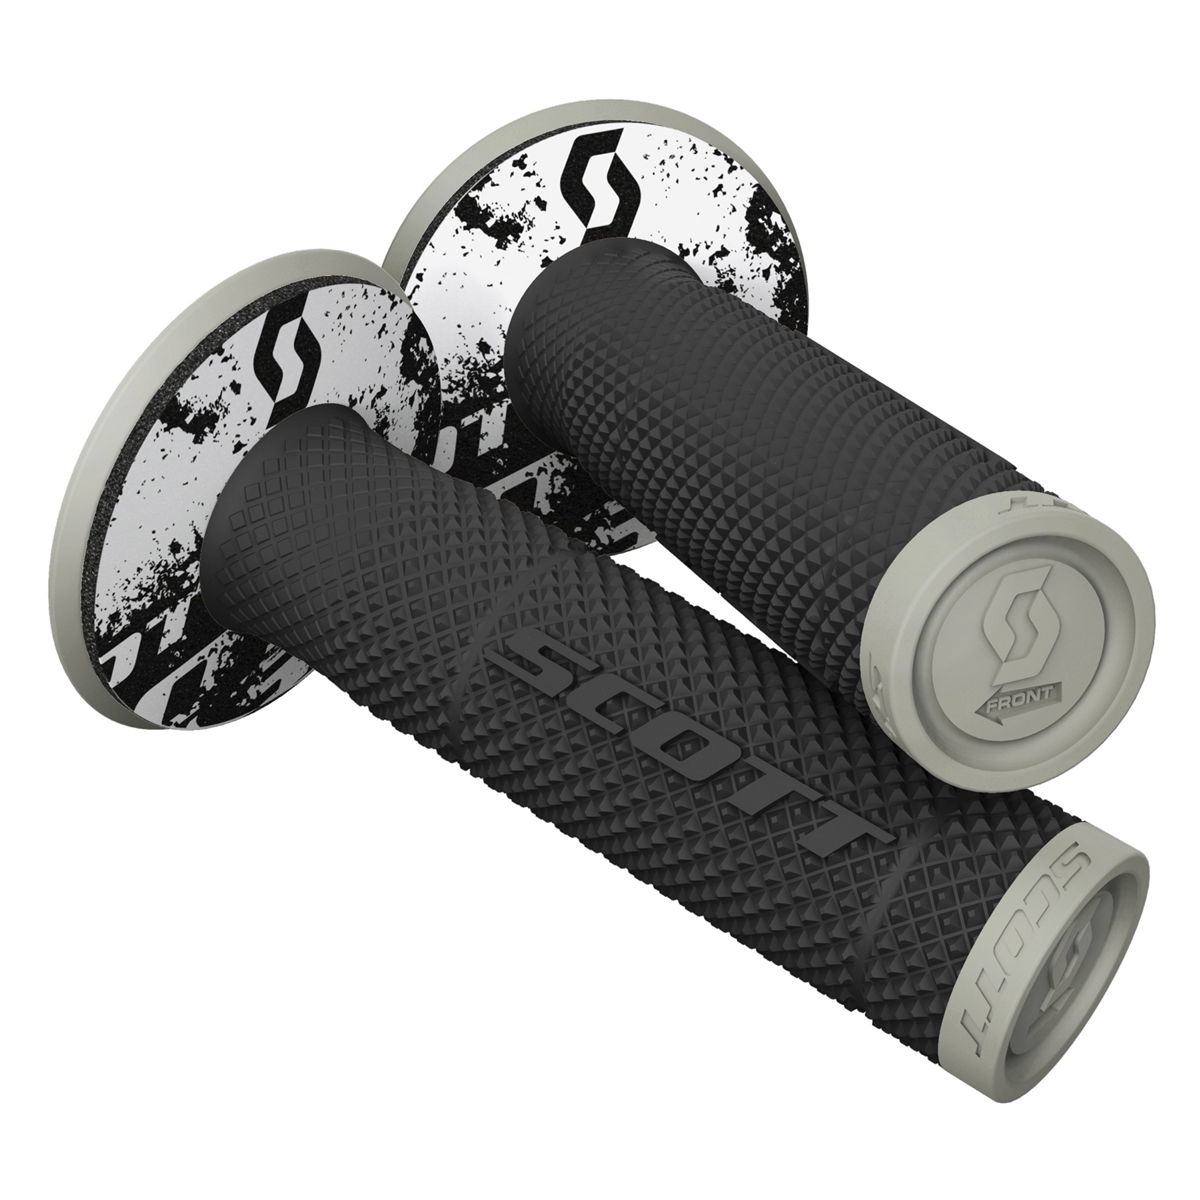 SX II & Donut Off-road grips Black/Grey